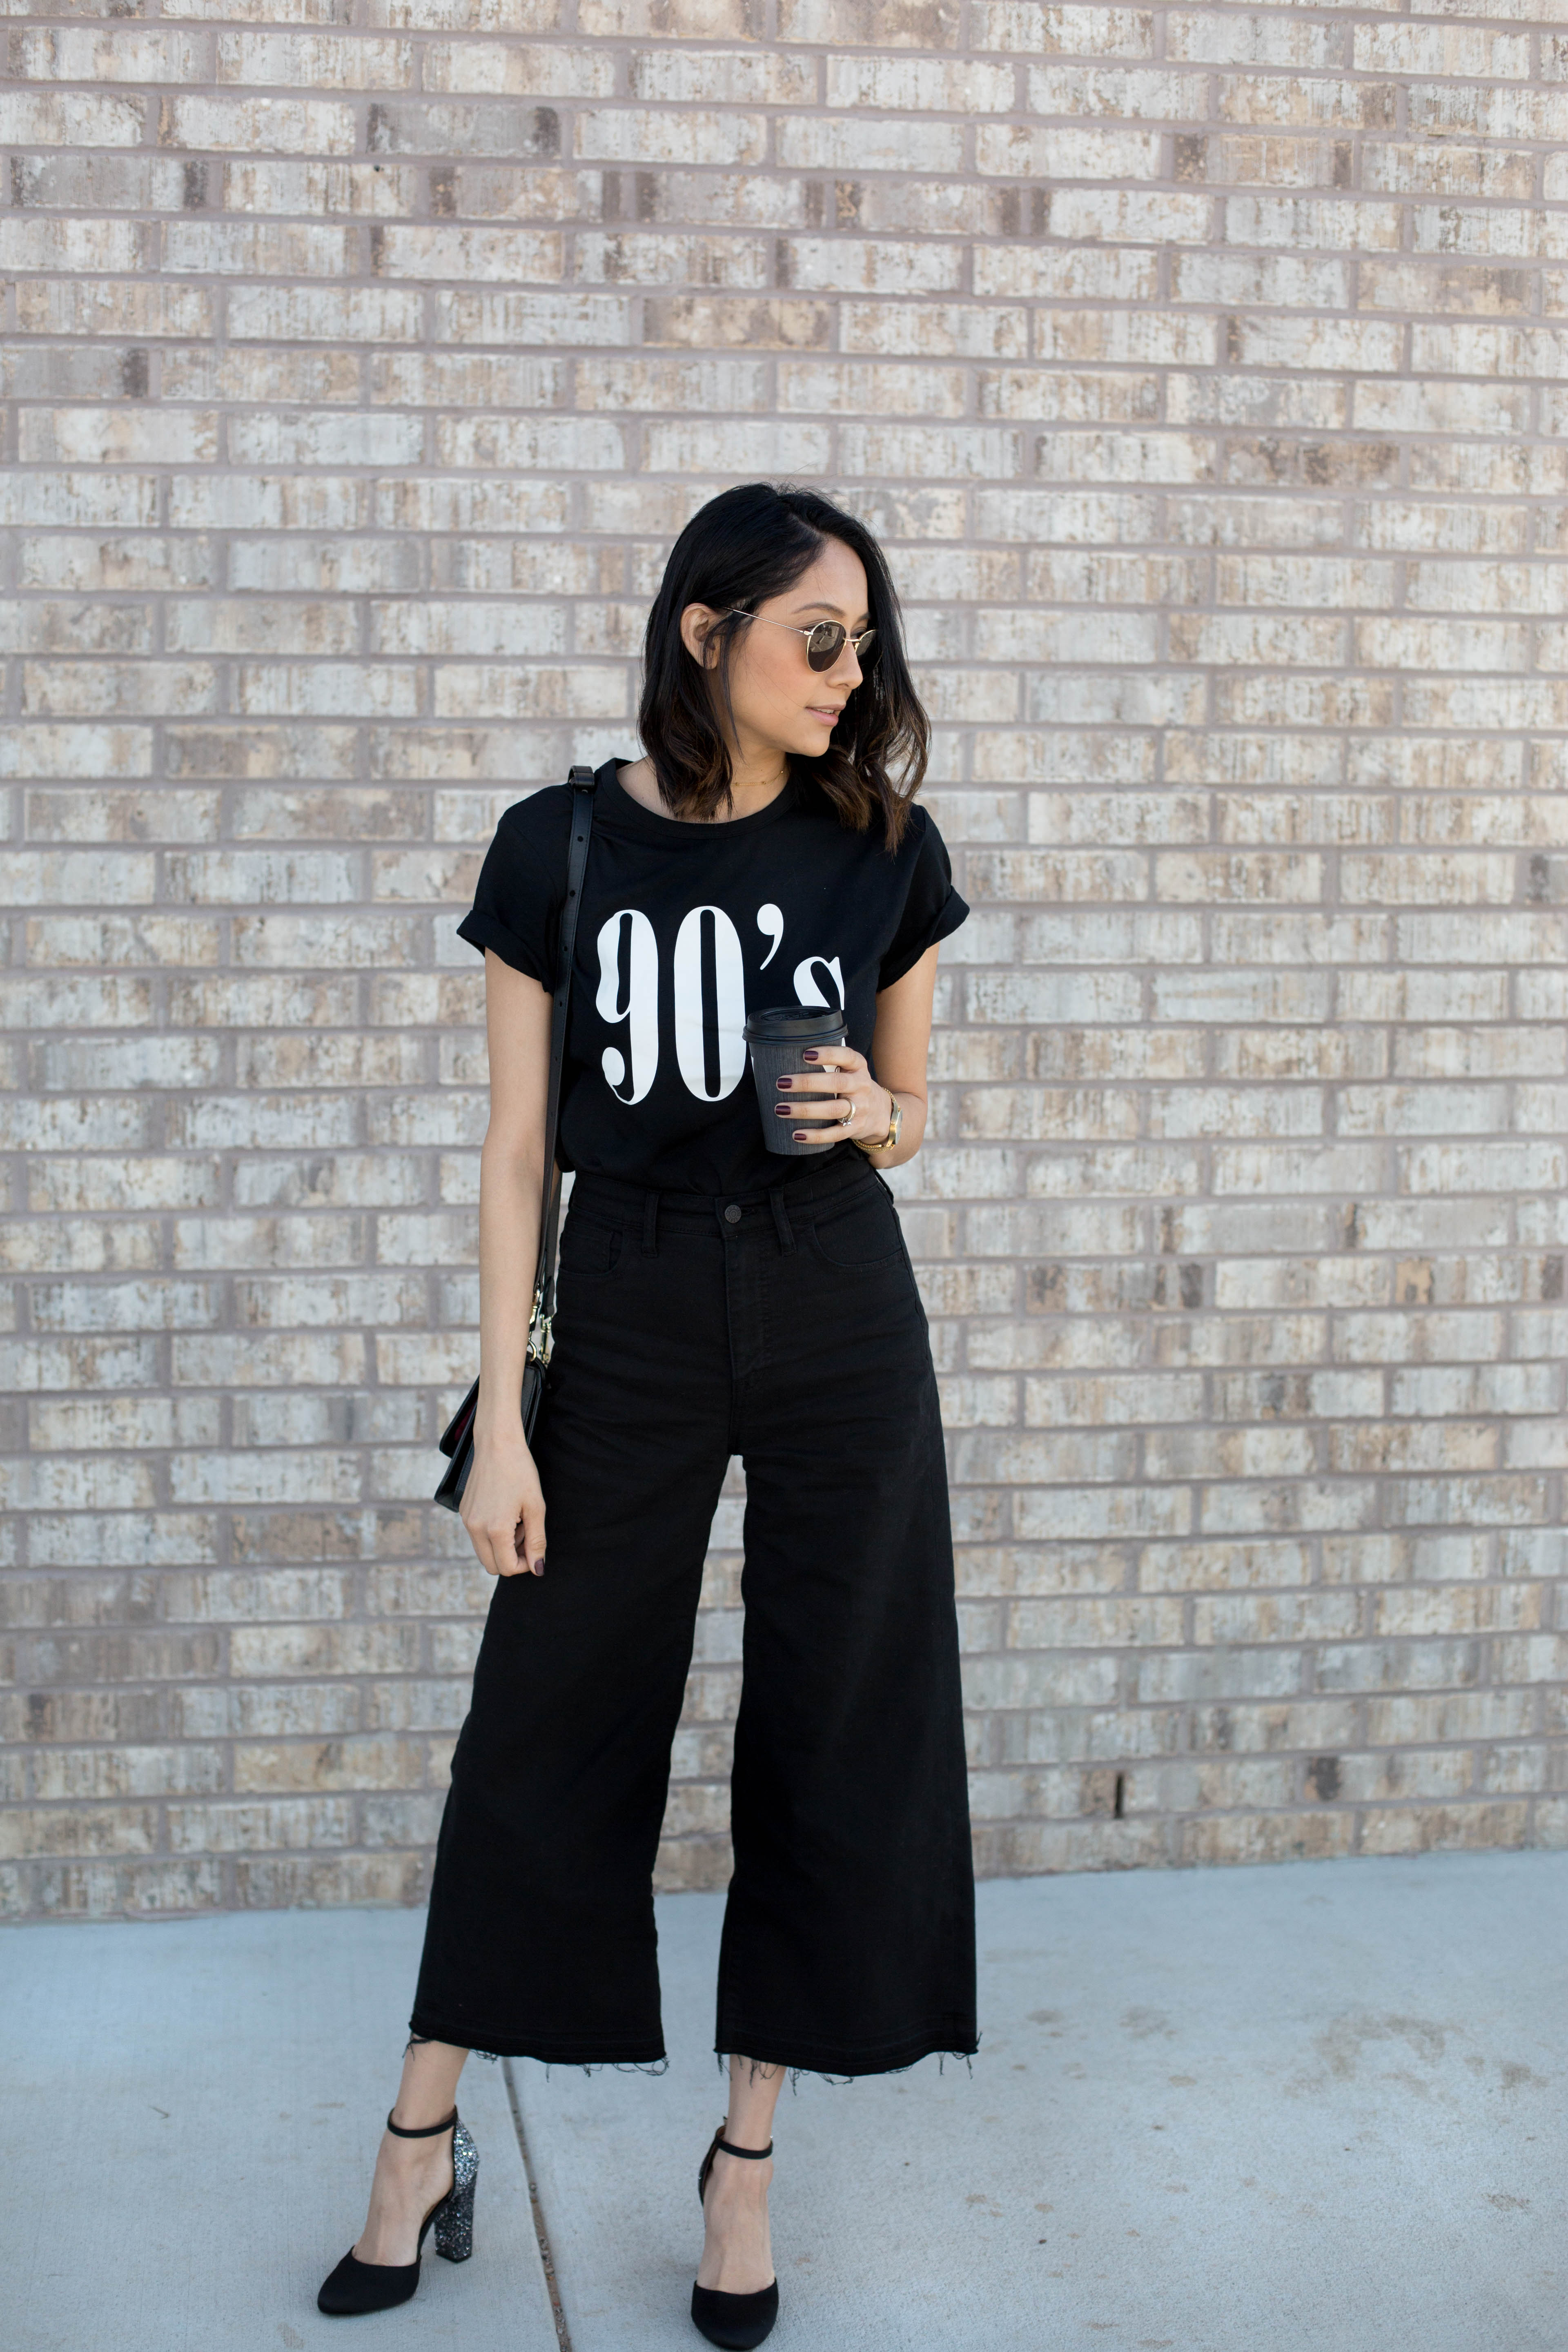 Lifestyle blogger Lilly Beltran of Daily Craving in a summer look wearing a black 90's tee and black denim jeans